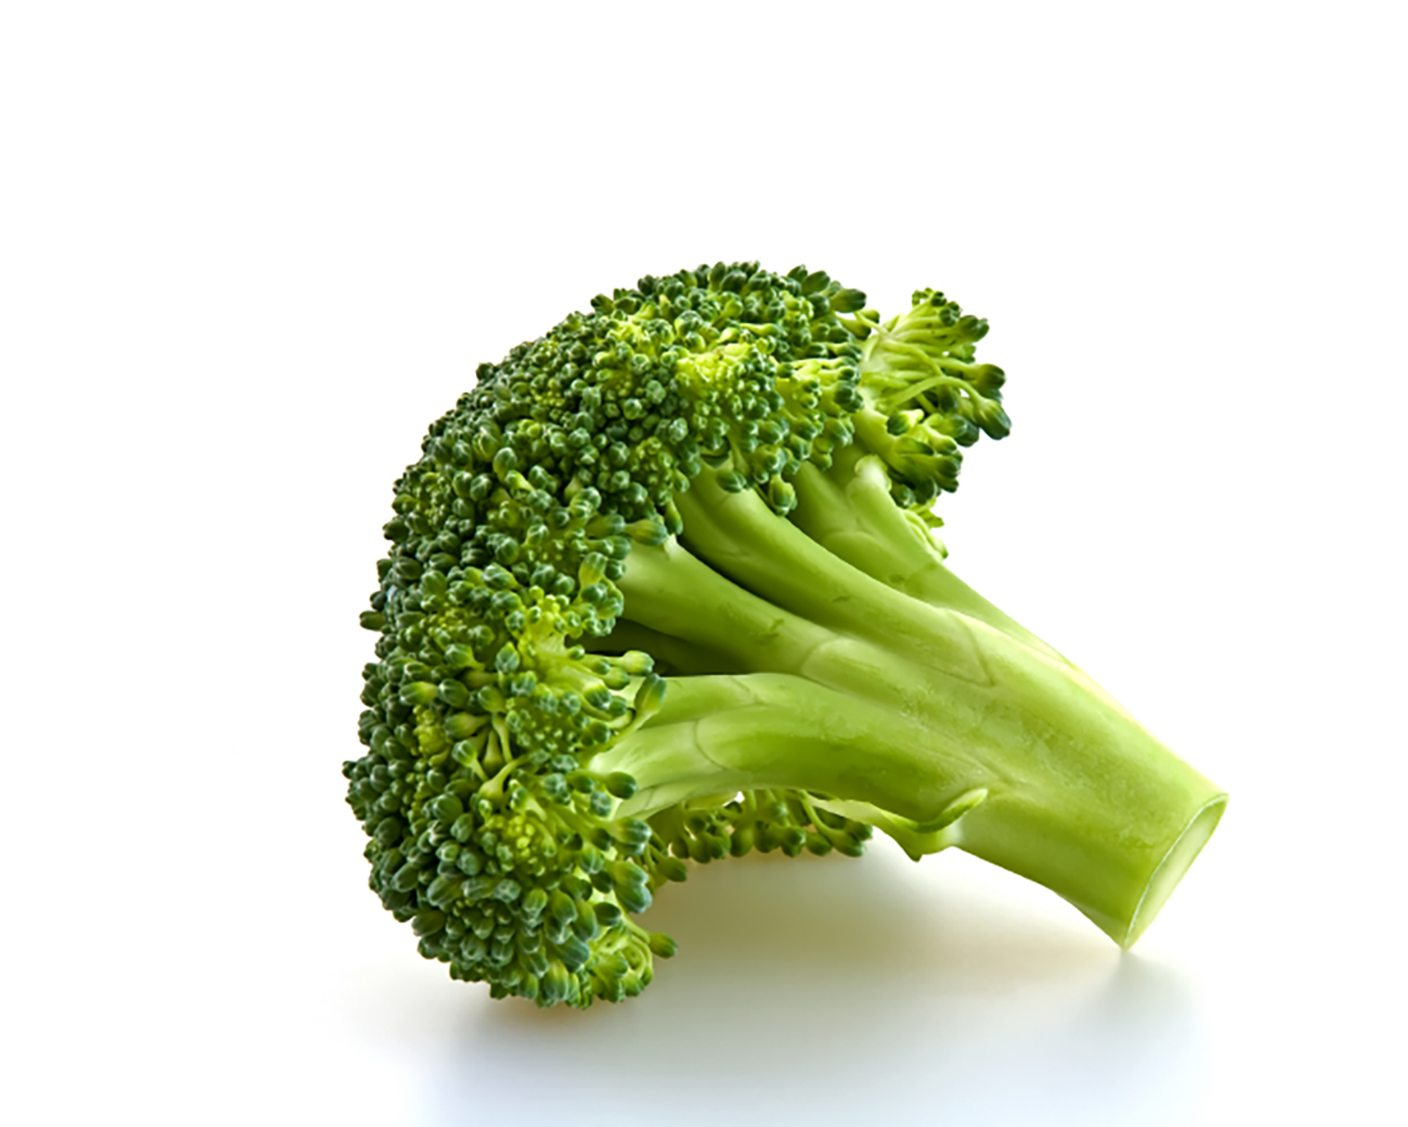 Green broccoli isolated on a white background.